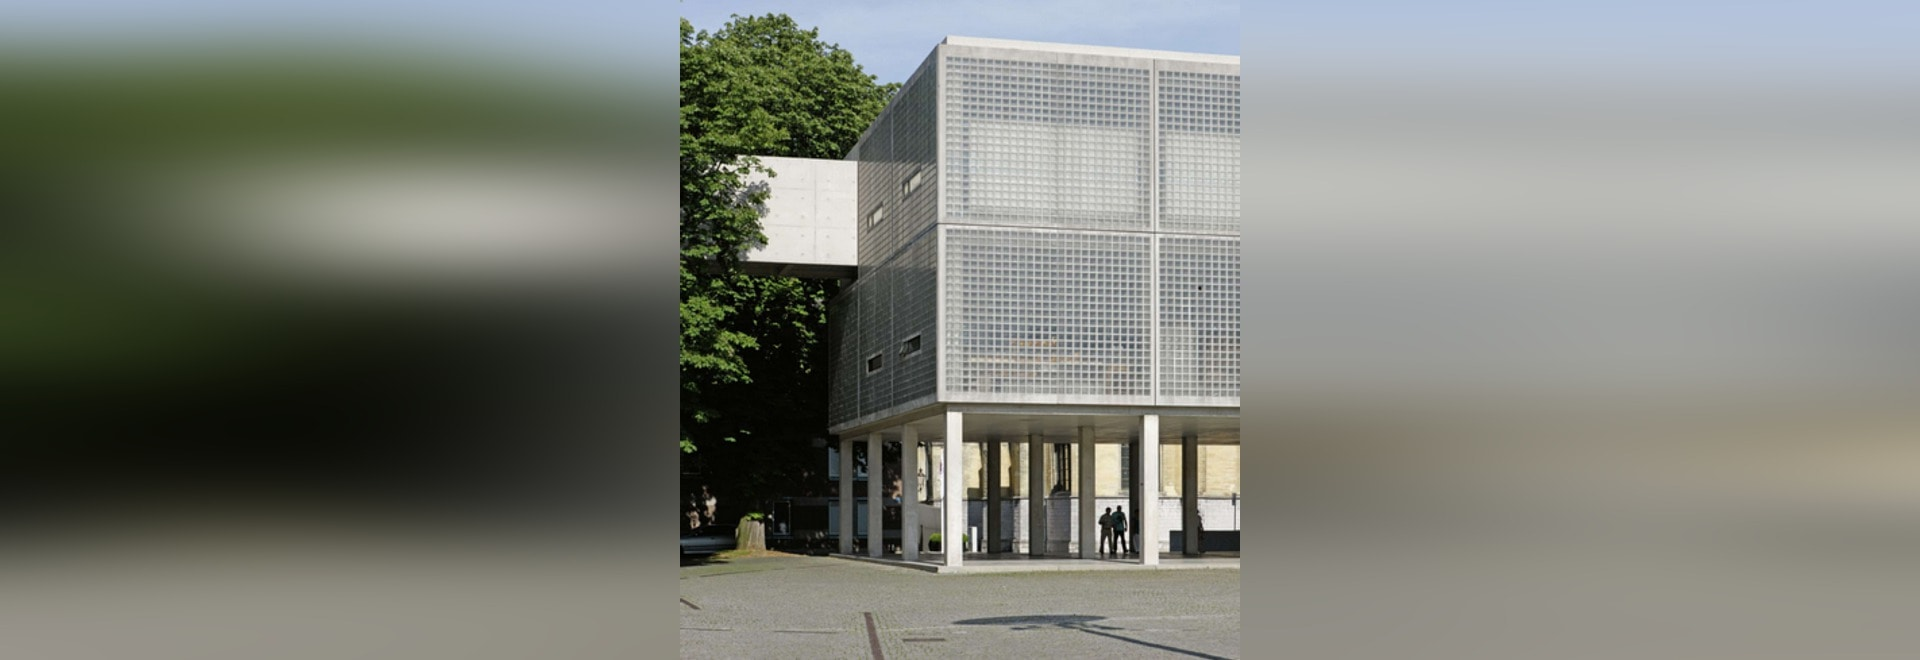 Academy of Art & Architecture